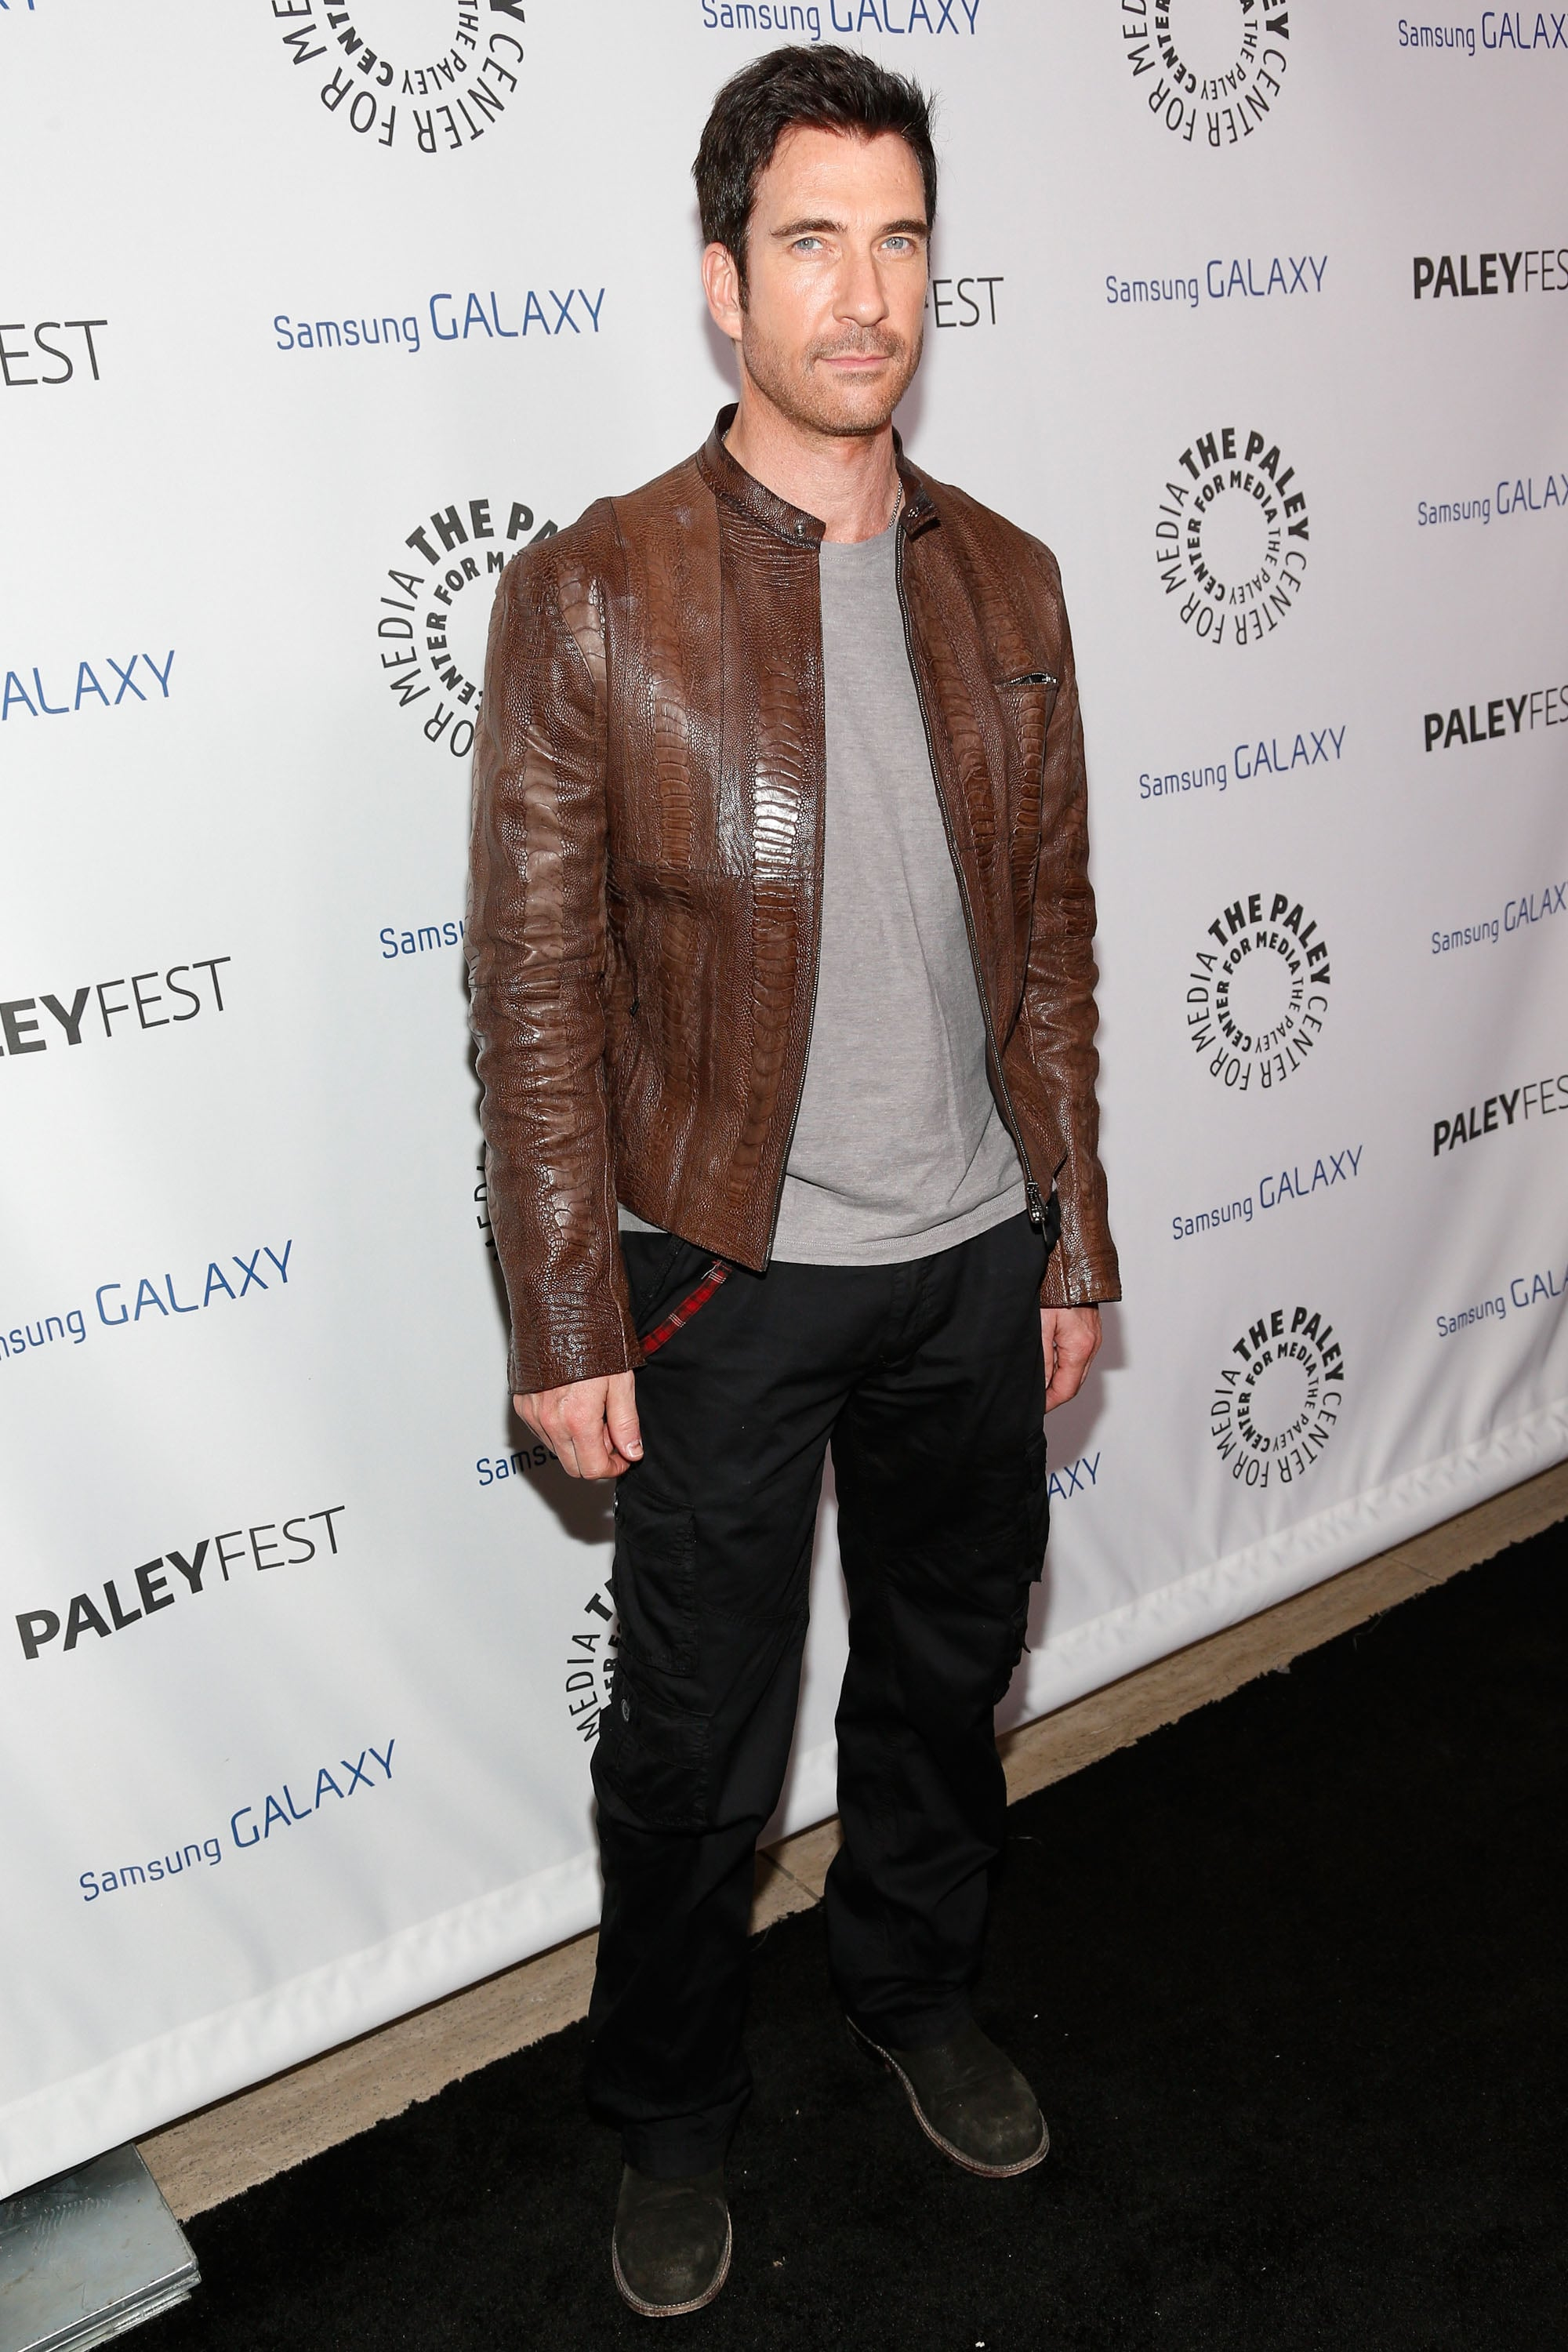 Dylan McDermott wore a brown leather jacket.